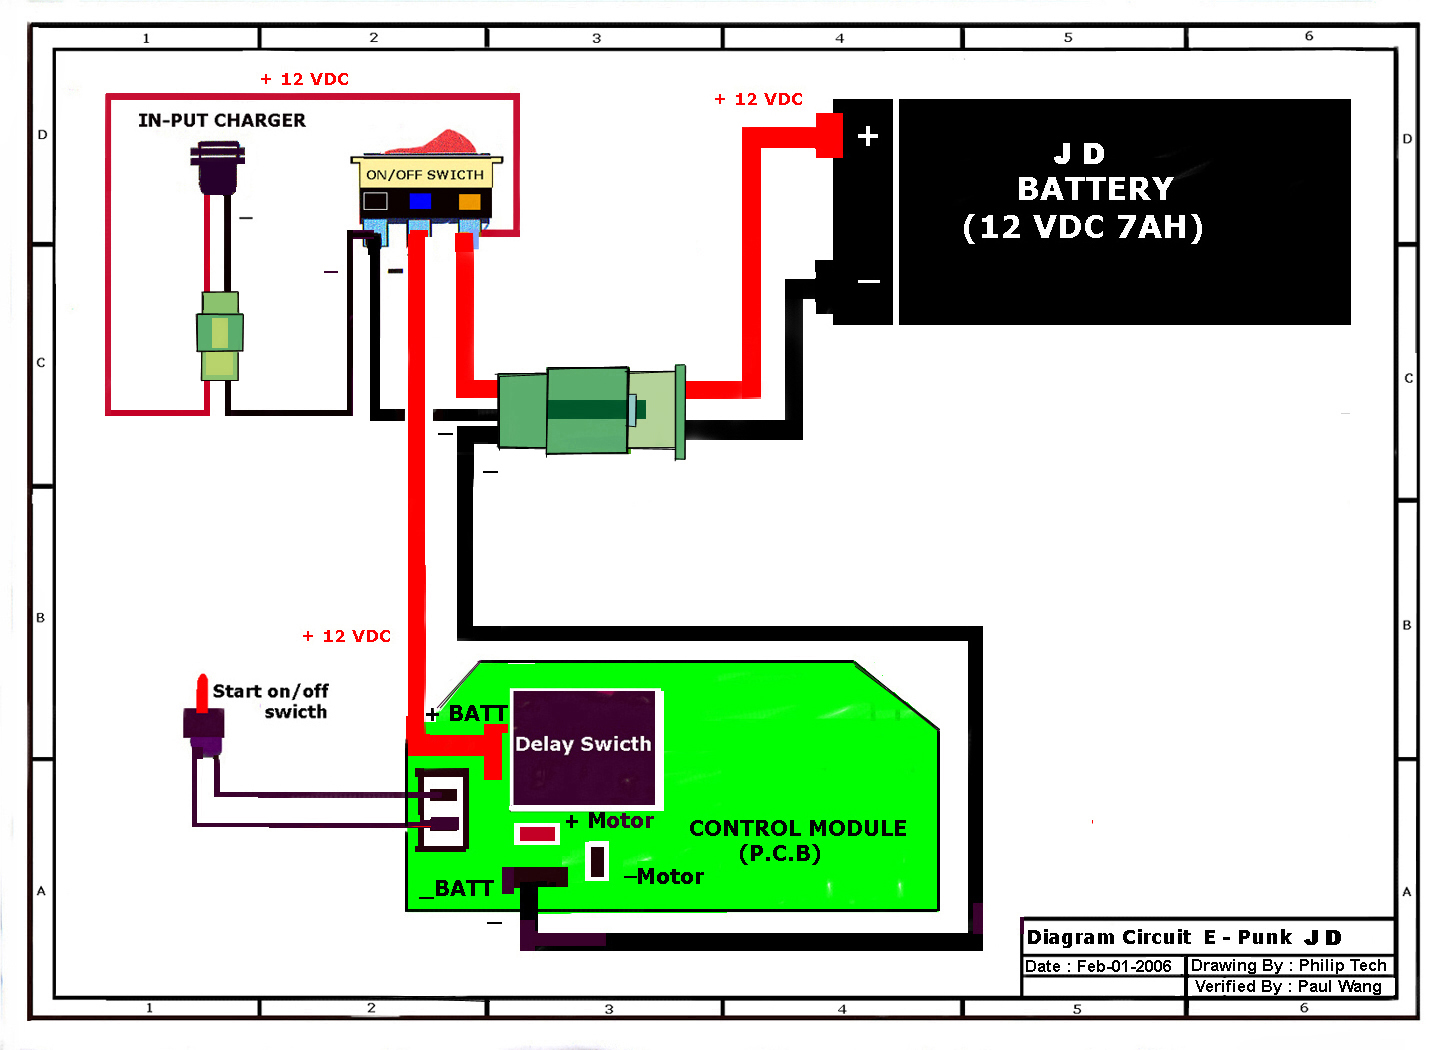 razor epunk wiring diagram jd razor go kart wiring diagram razor go kart parts \u2022 free wiring  at bayanpartner.co